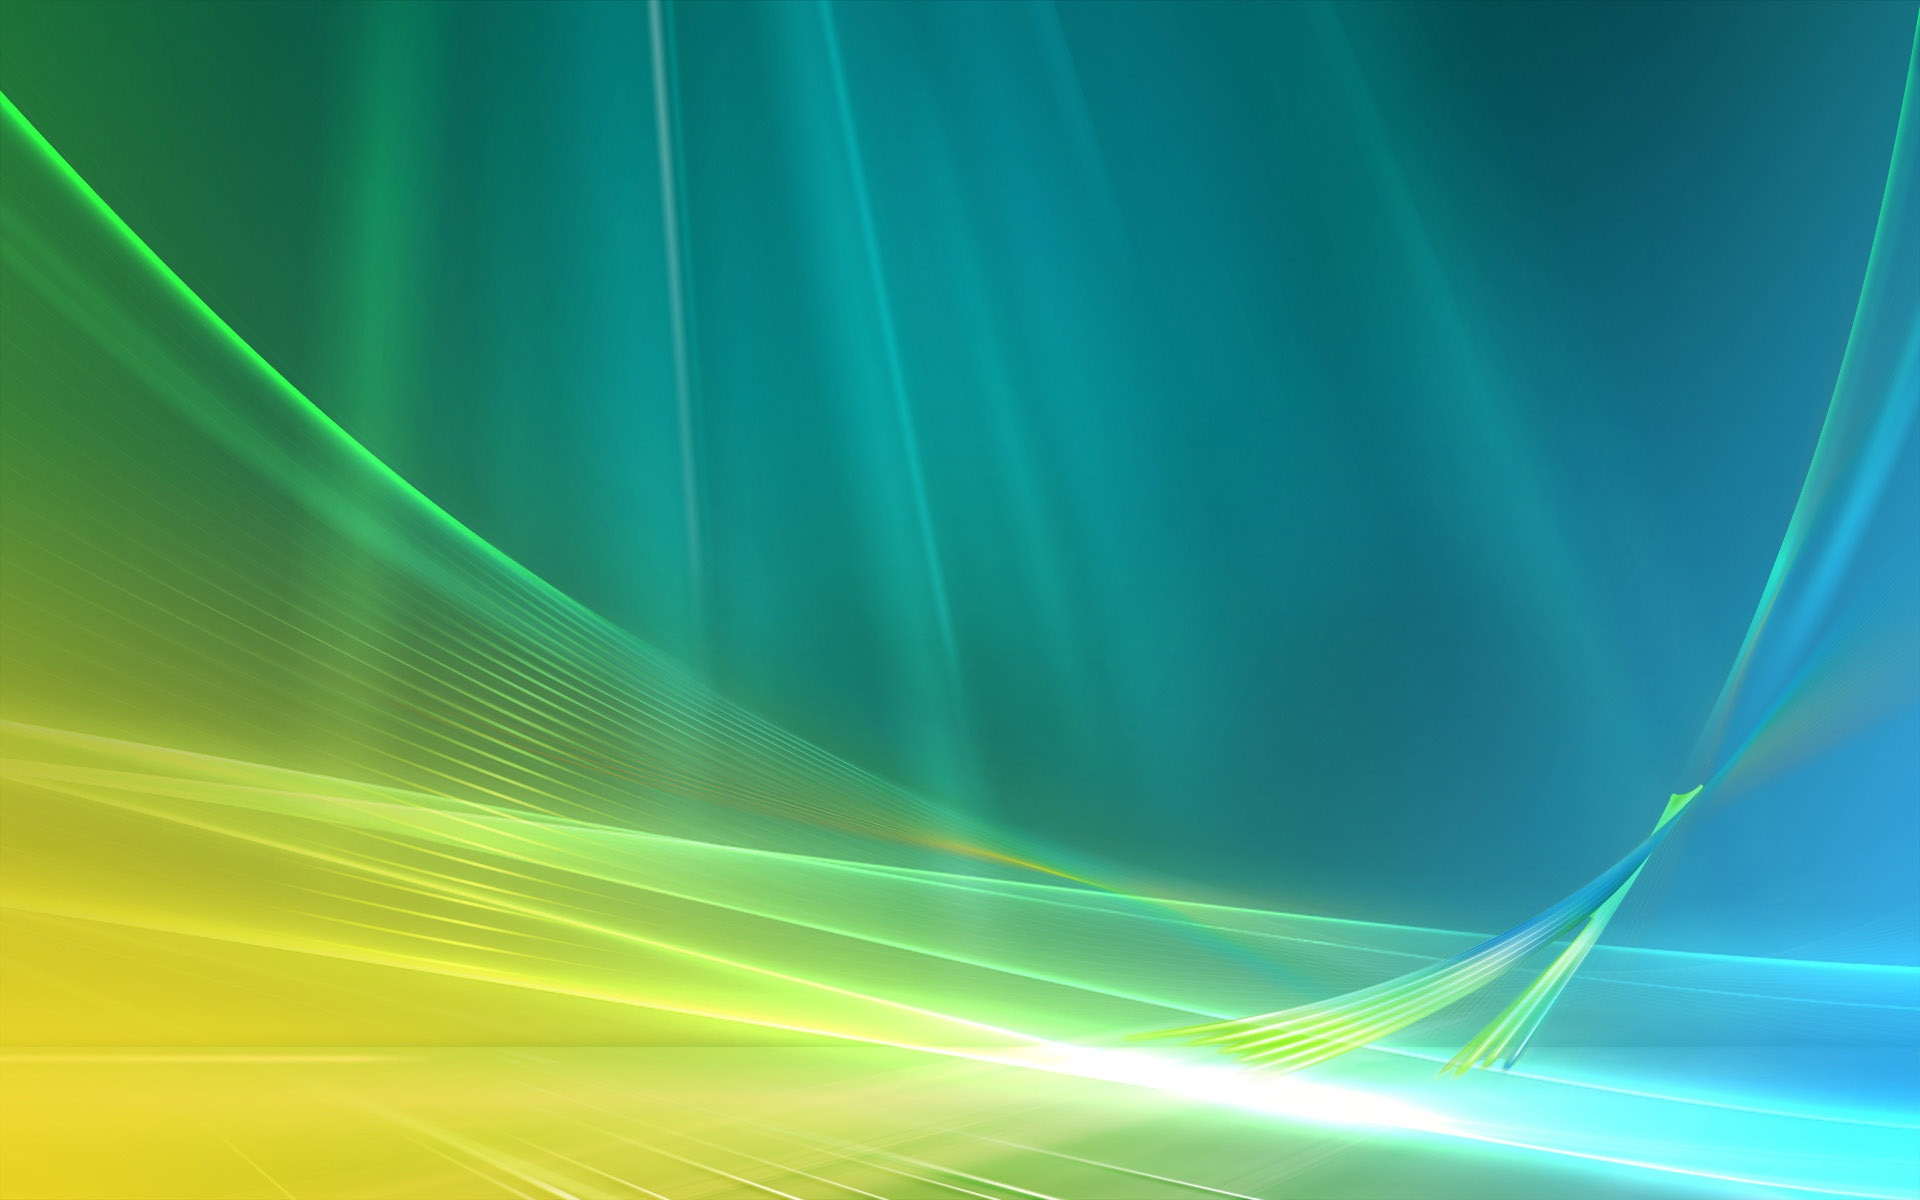 Download Wallpaper 1920x1200 Blue and green abstract space ...